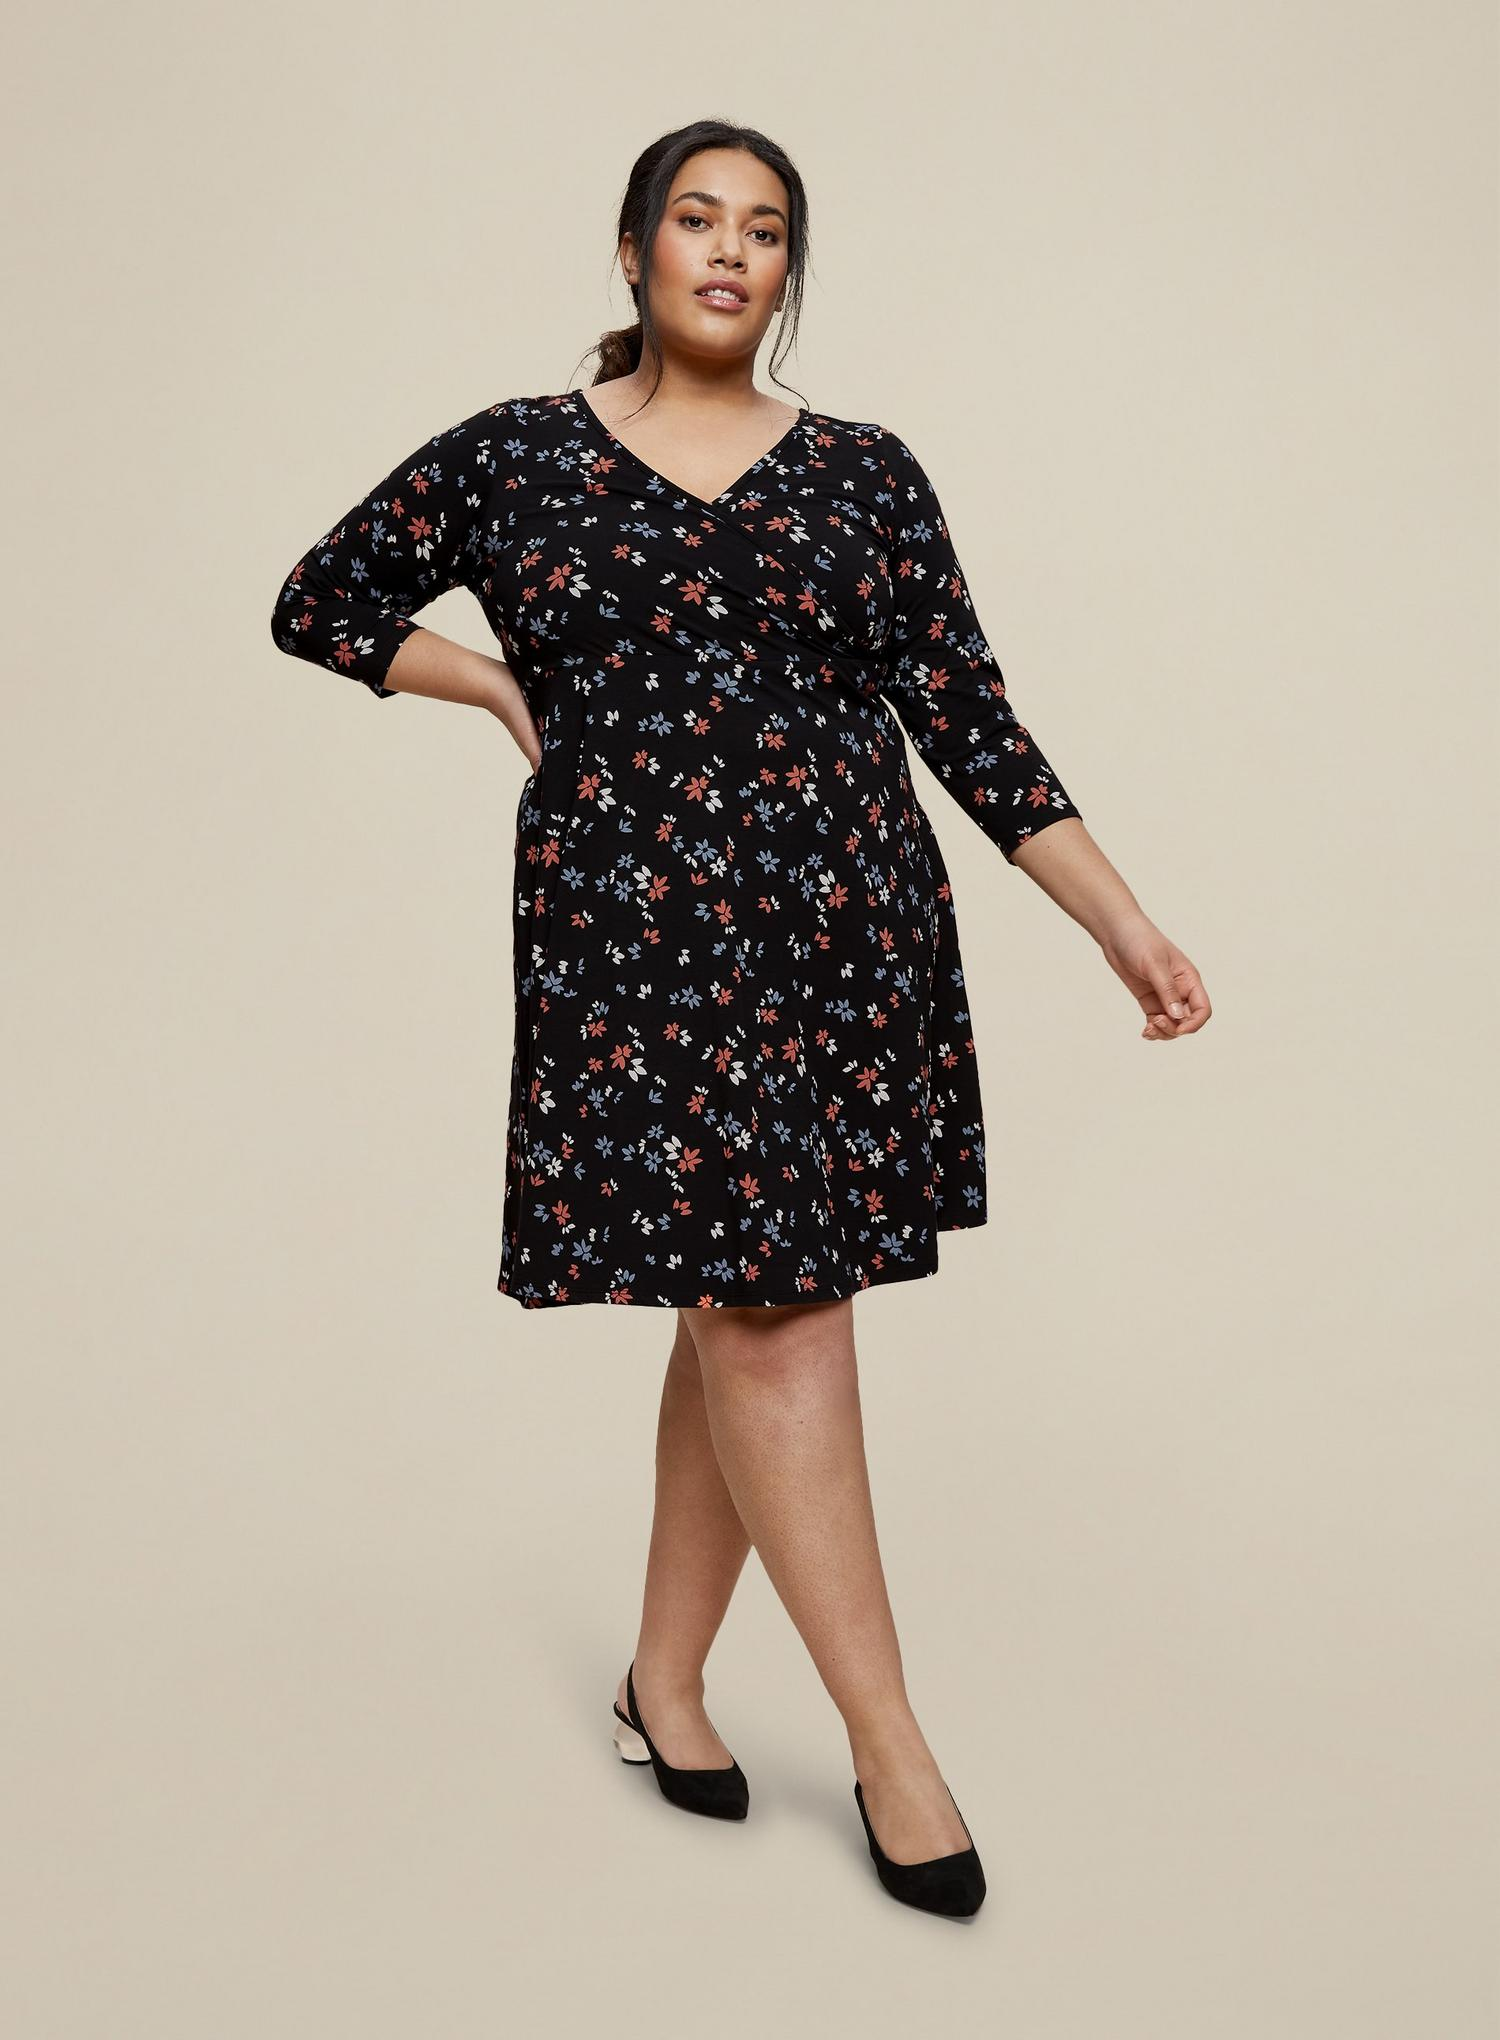 105 Curve Black Ditsy Print Wrap Dress image number 3